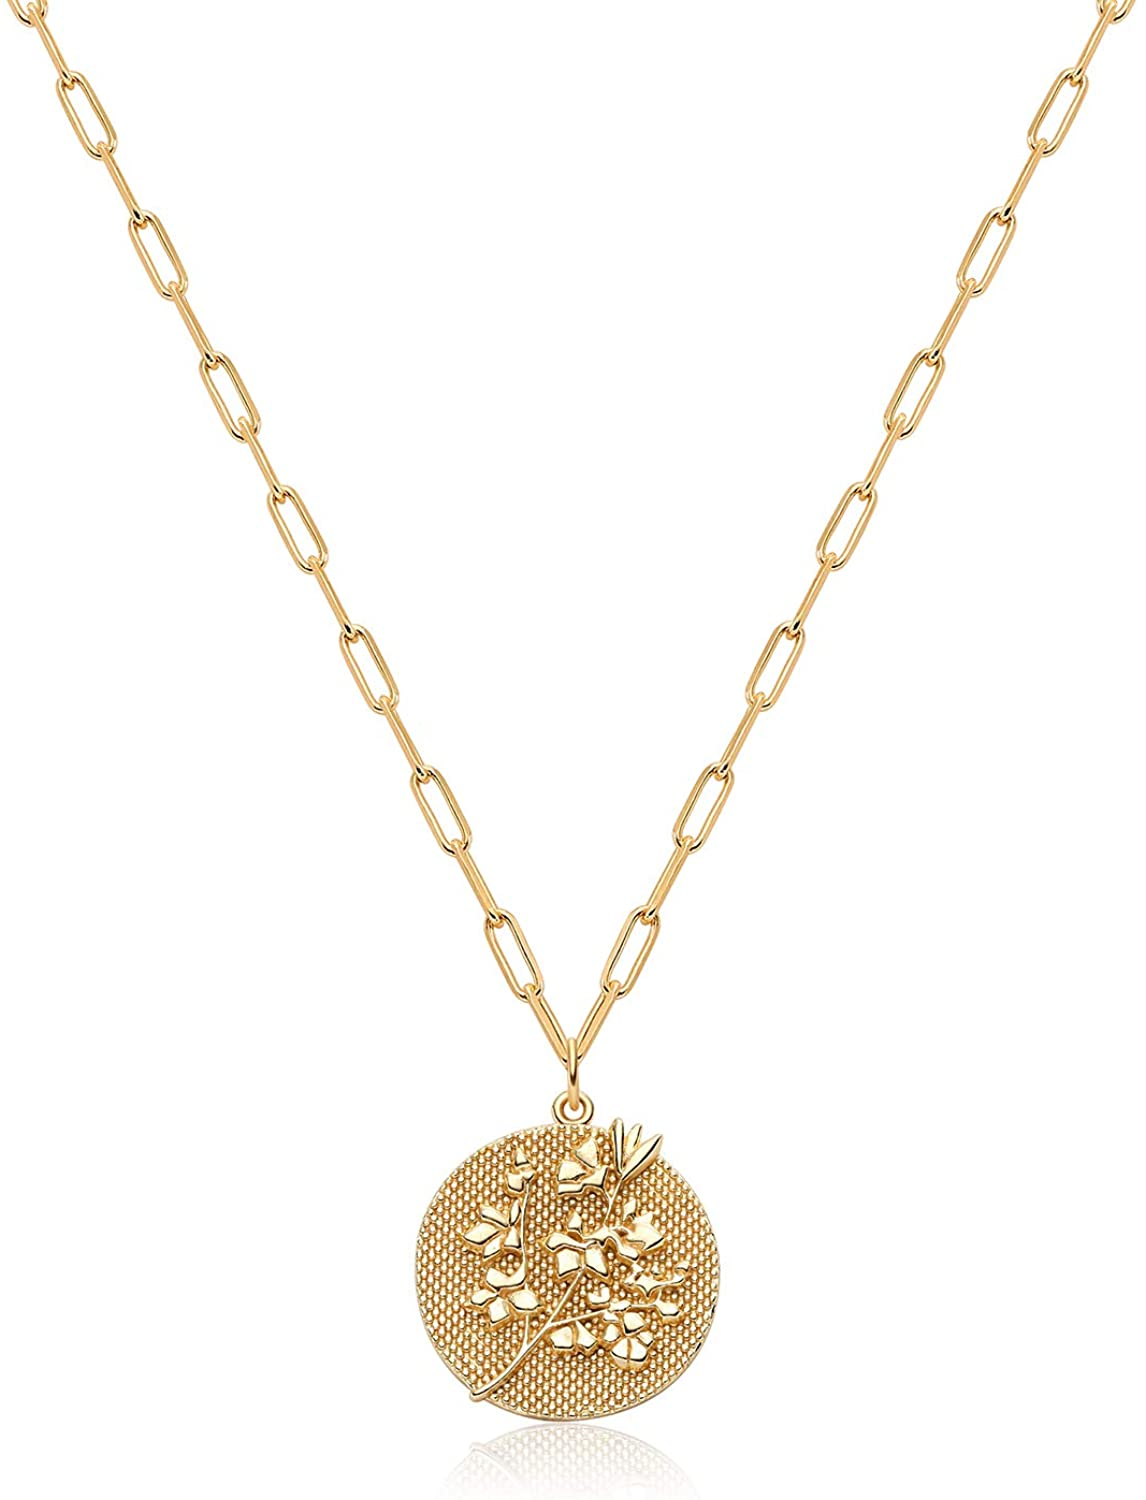 Fettero Coin Necklace Gold Disc Flower Medal Pendant 14K Gold Plated Dainty Chunky Paperclip Chain Minimalist Simple Boho Personalized Jewelry Gift for Women